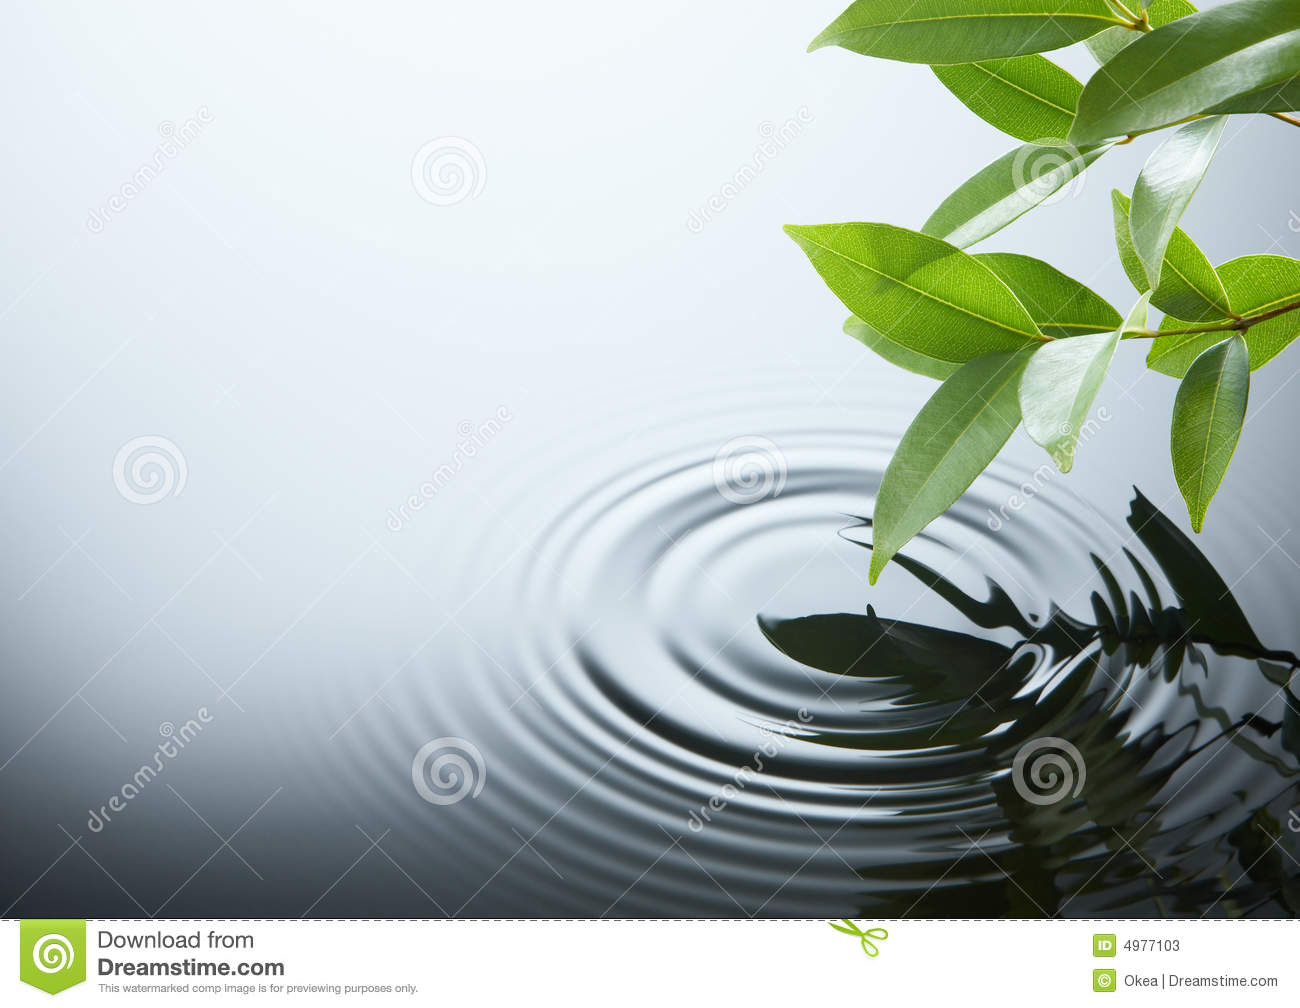 Water ripple and leaf